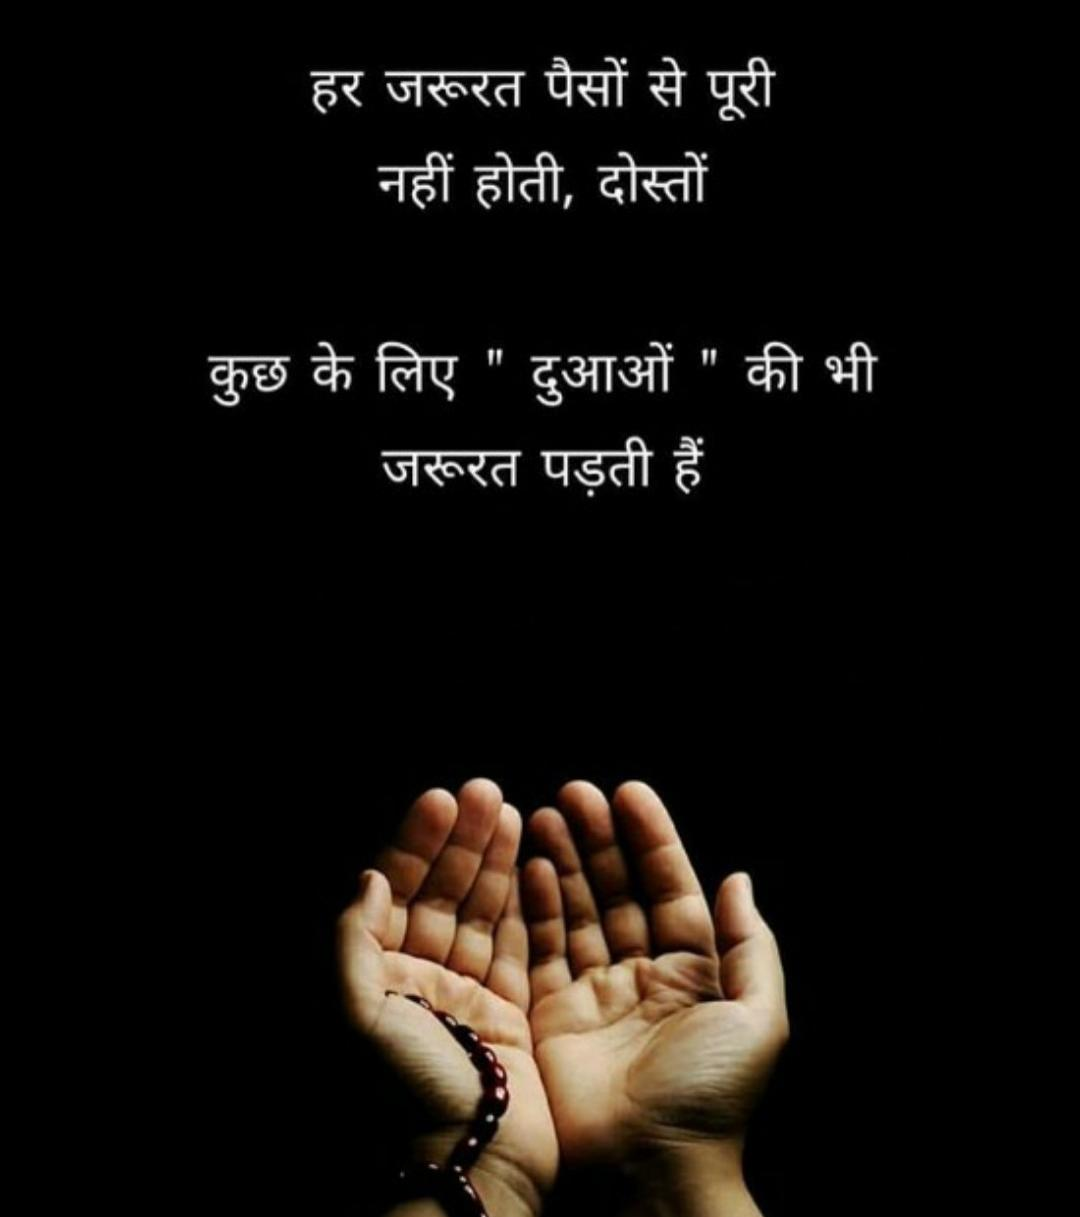 inspirational-life-quotes-in-hindi-14.jpg